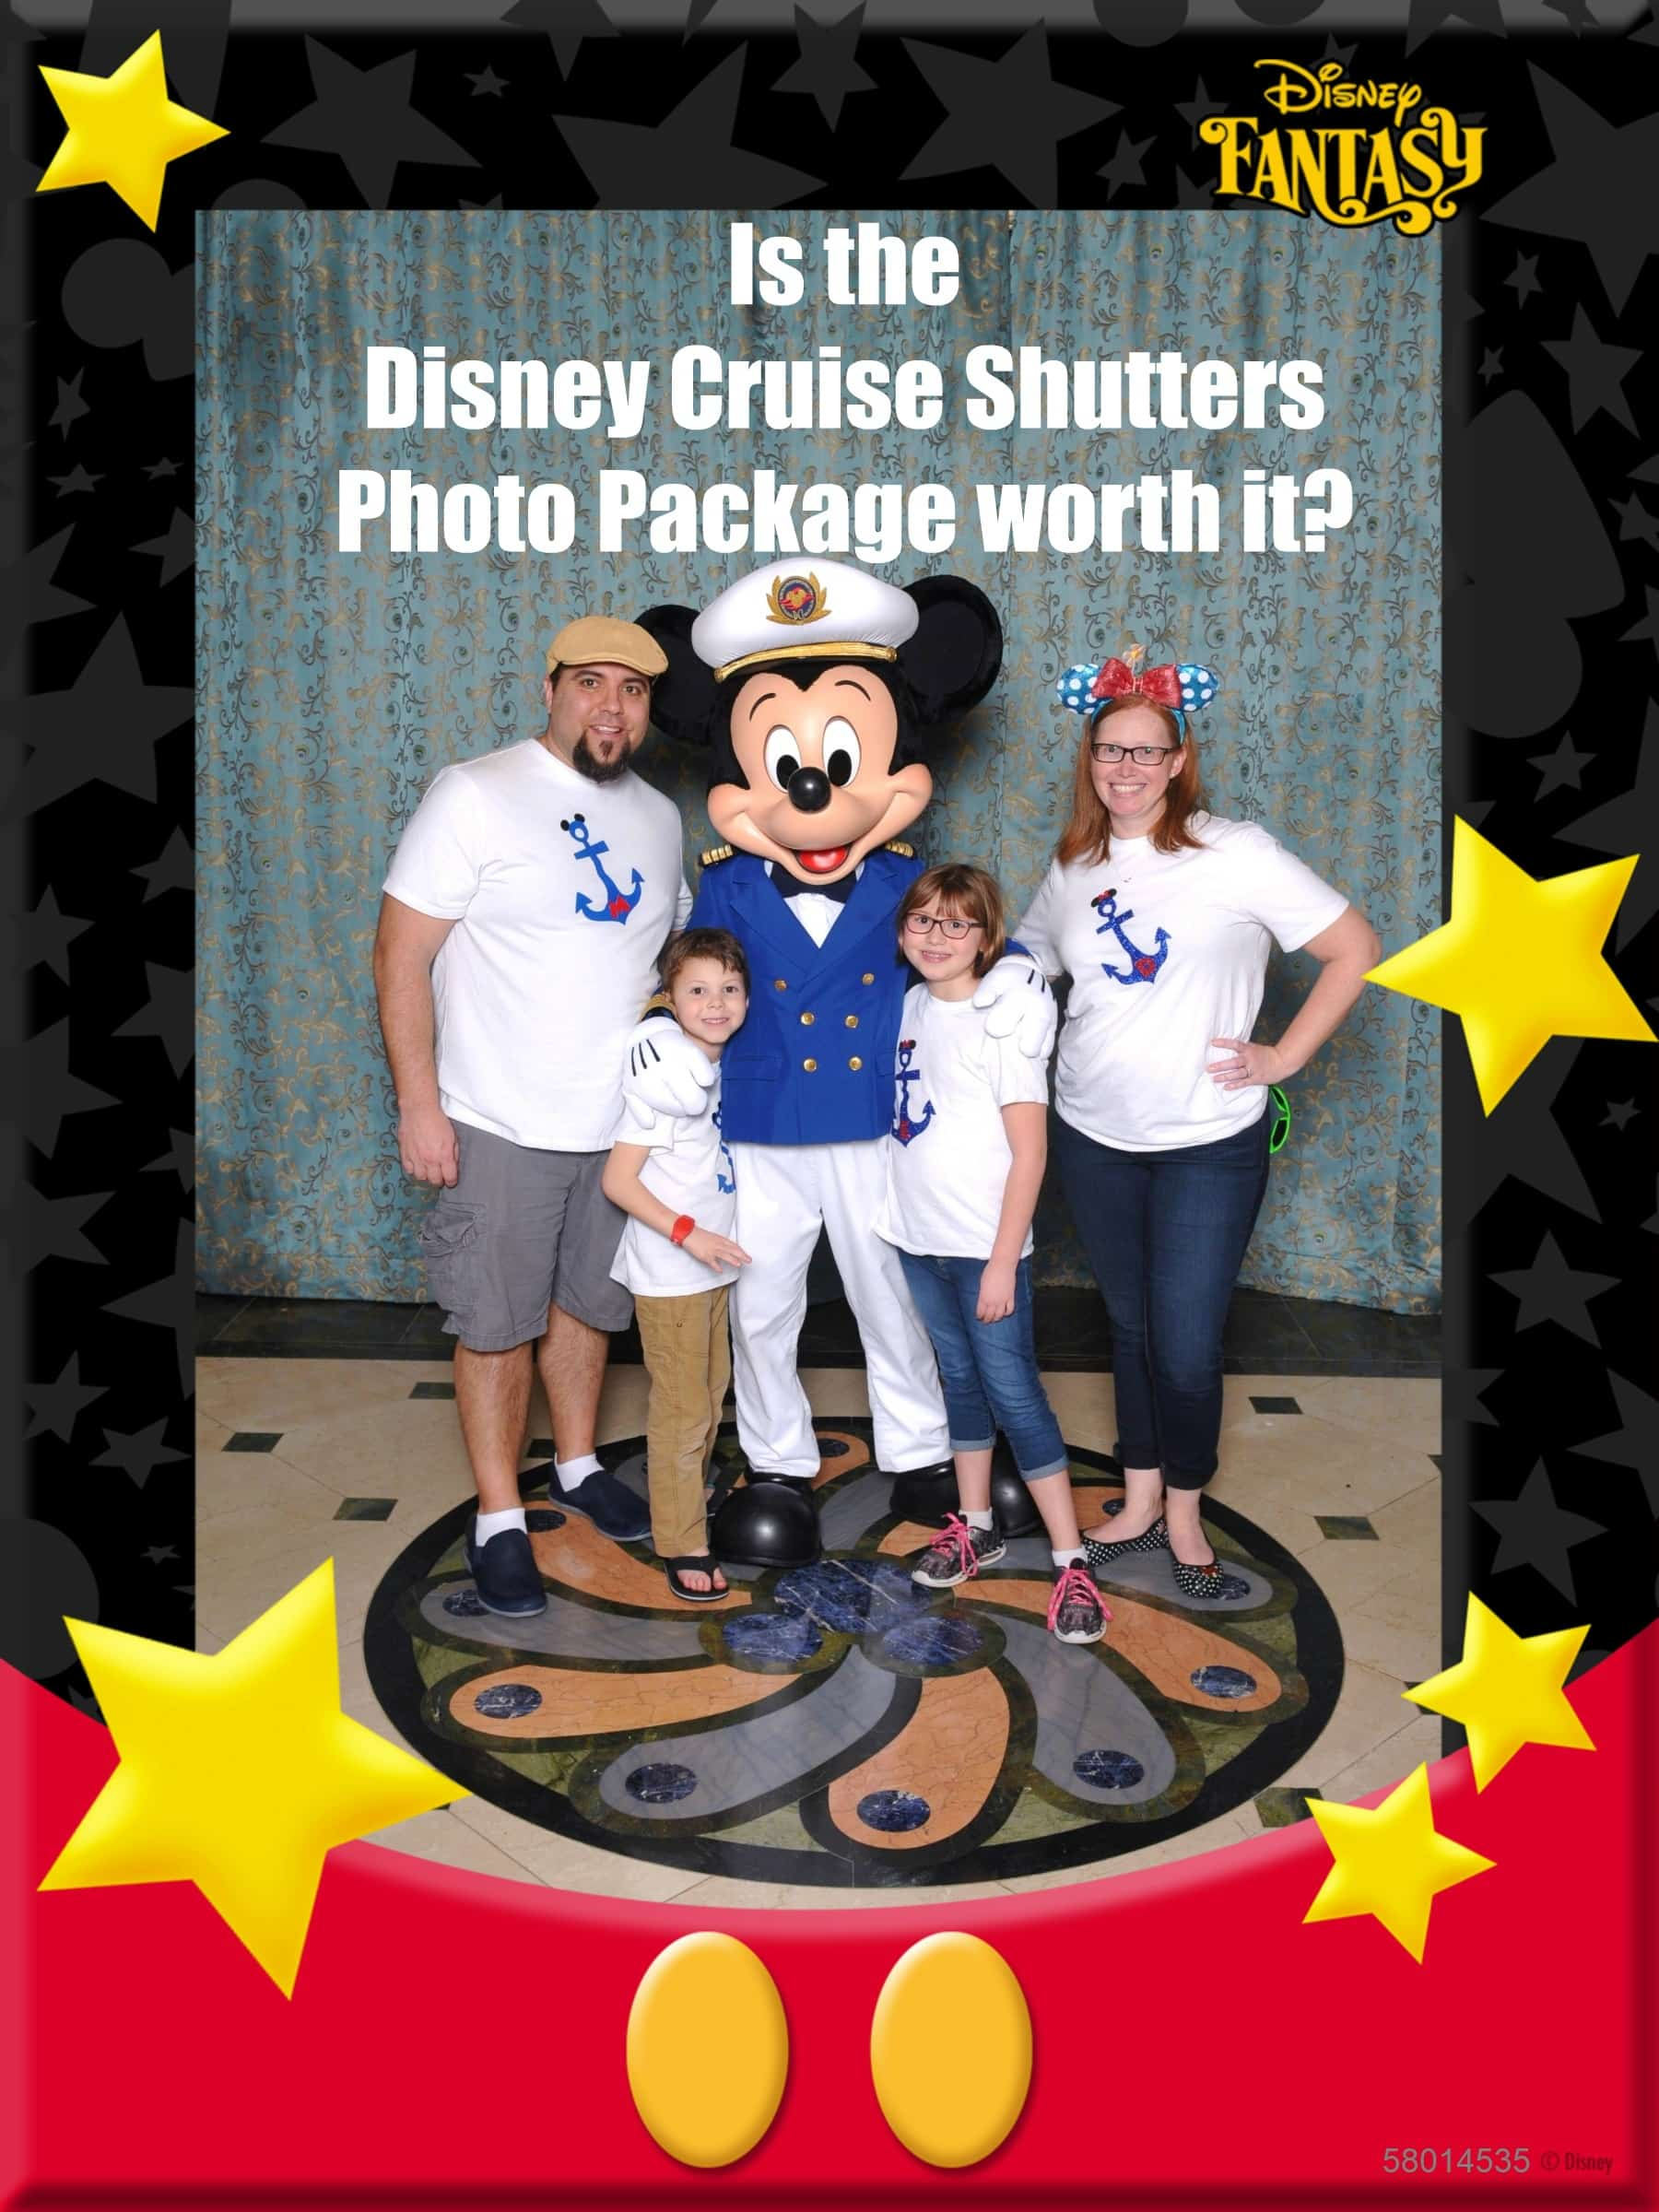 Is the Disney Cruise Photo package worth it